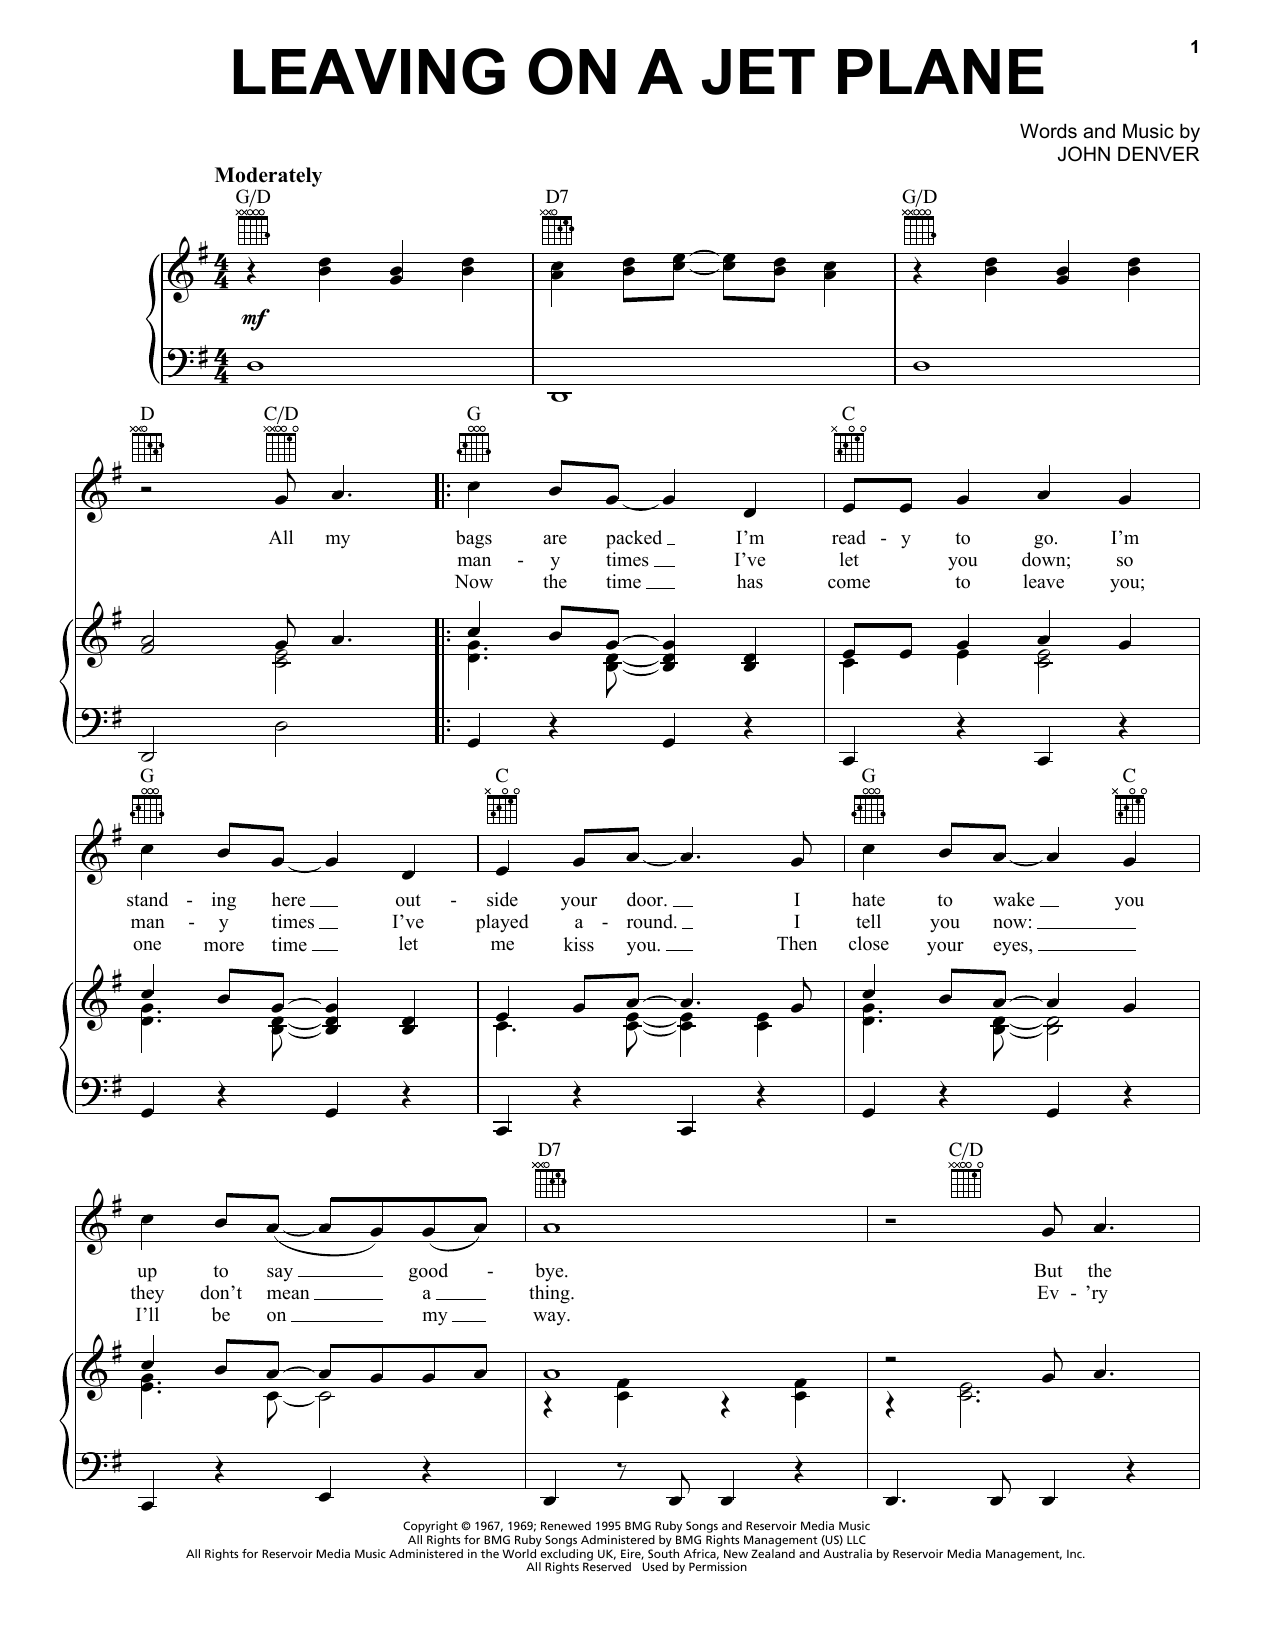 John Denver Leaving On A Jet Plane sheet music notes and chords. Download Printable PDF.